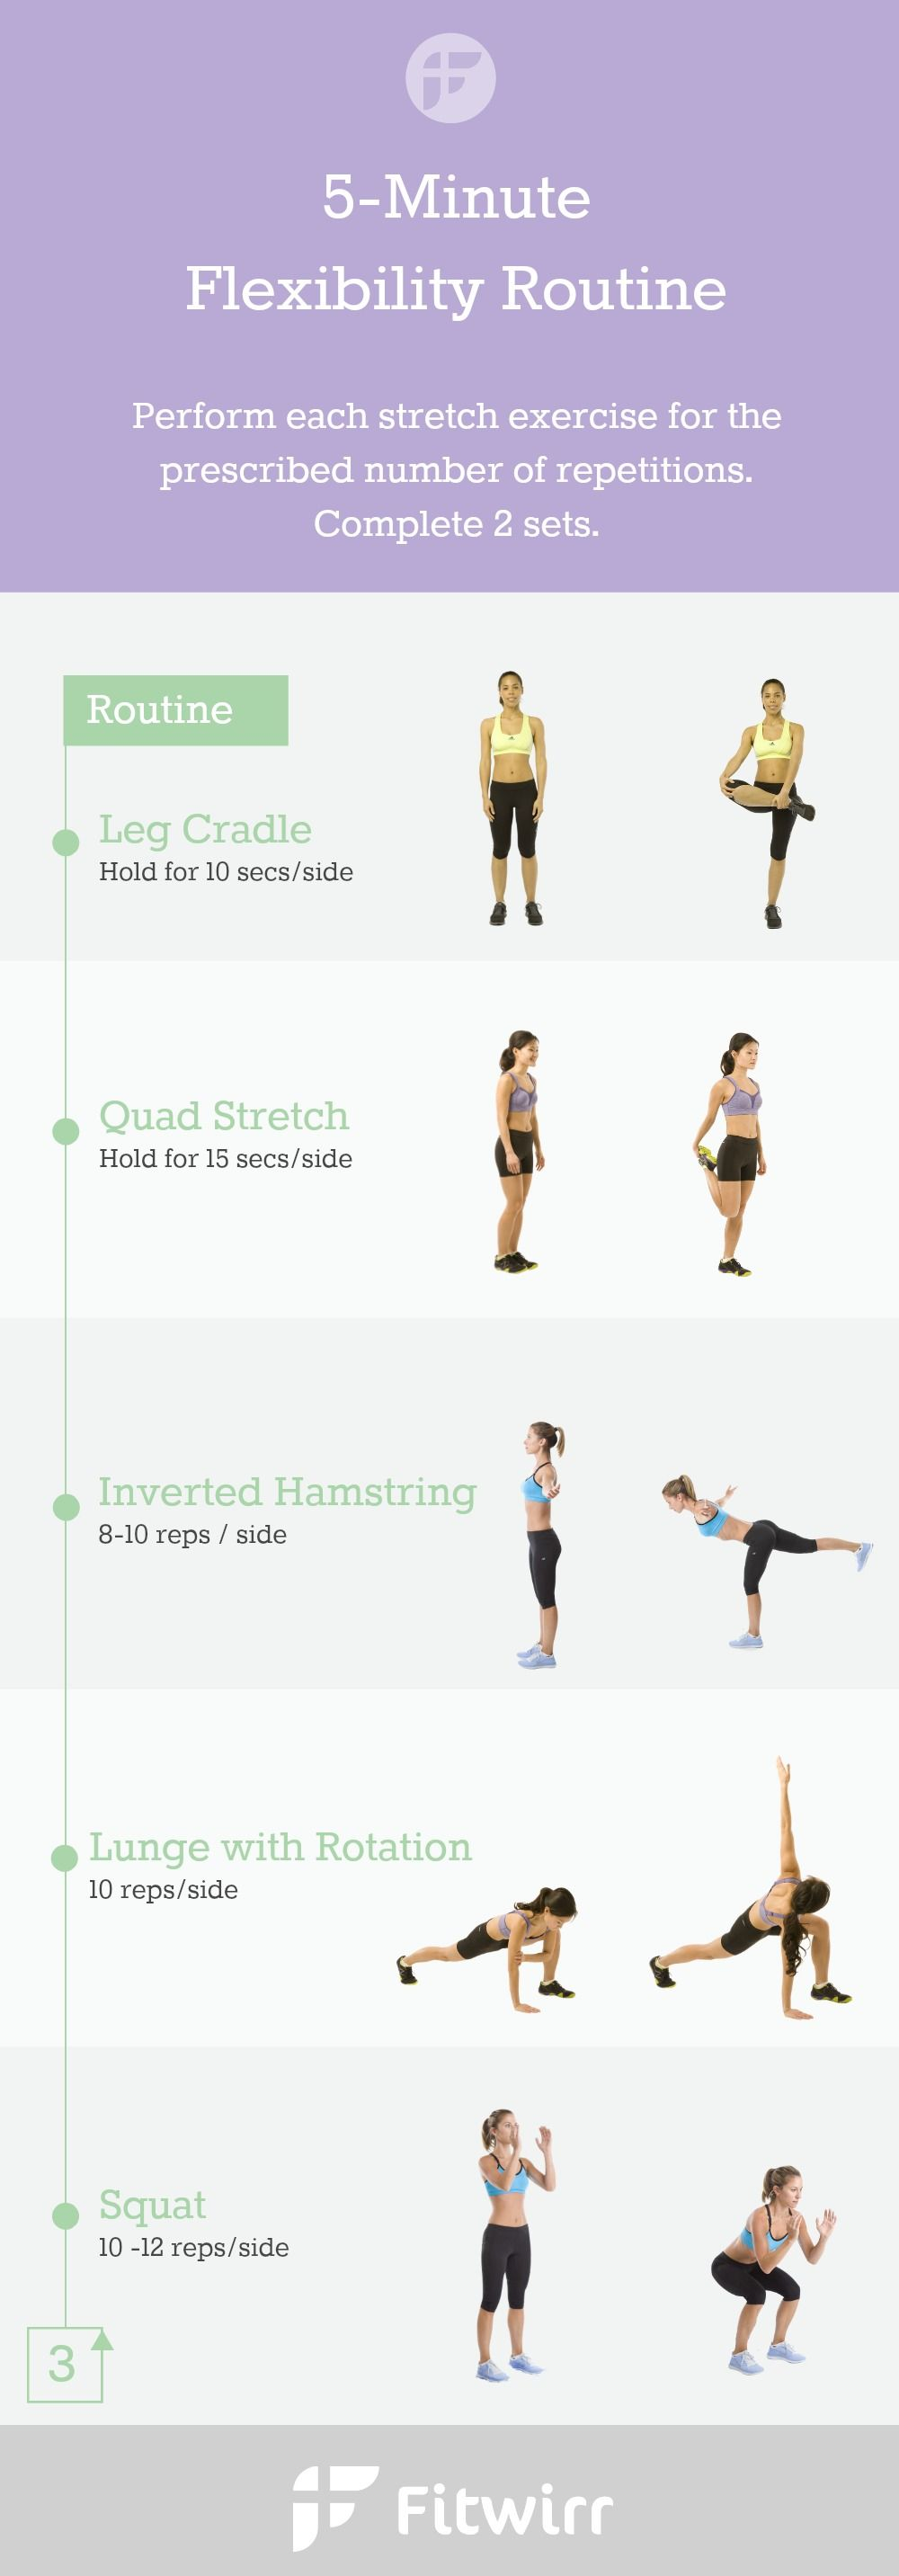 Stretching exercises for beginners: tips and rules